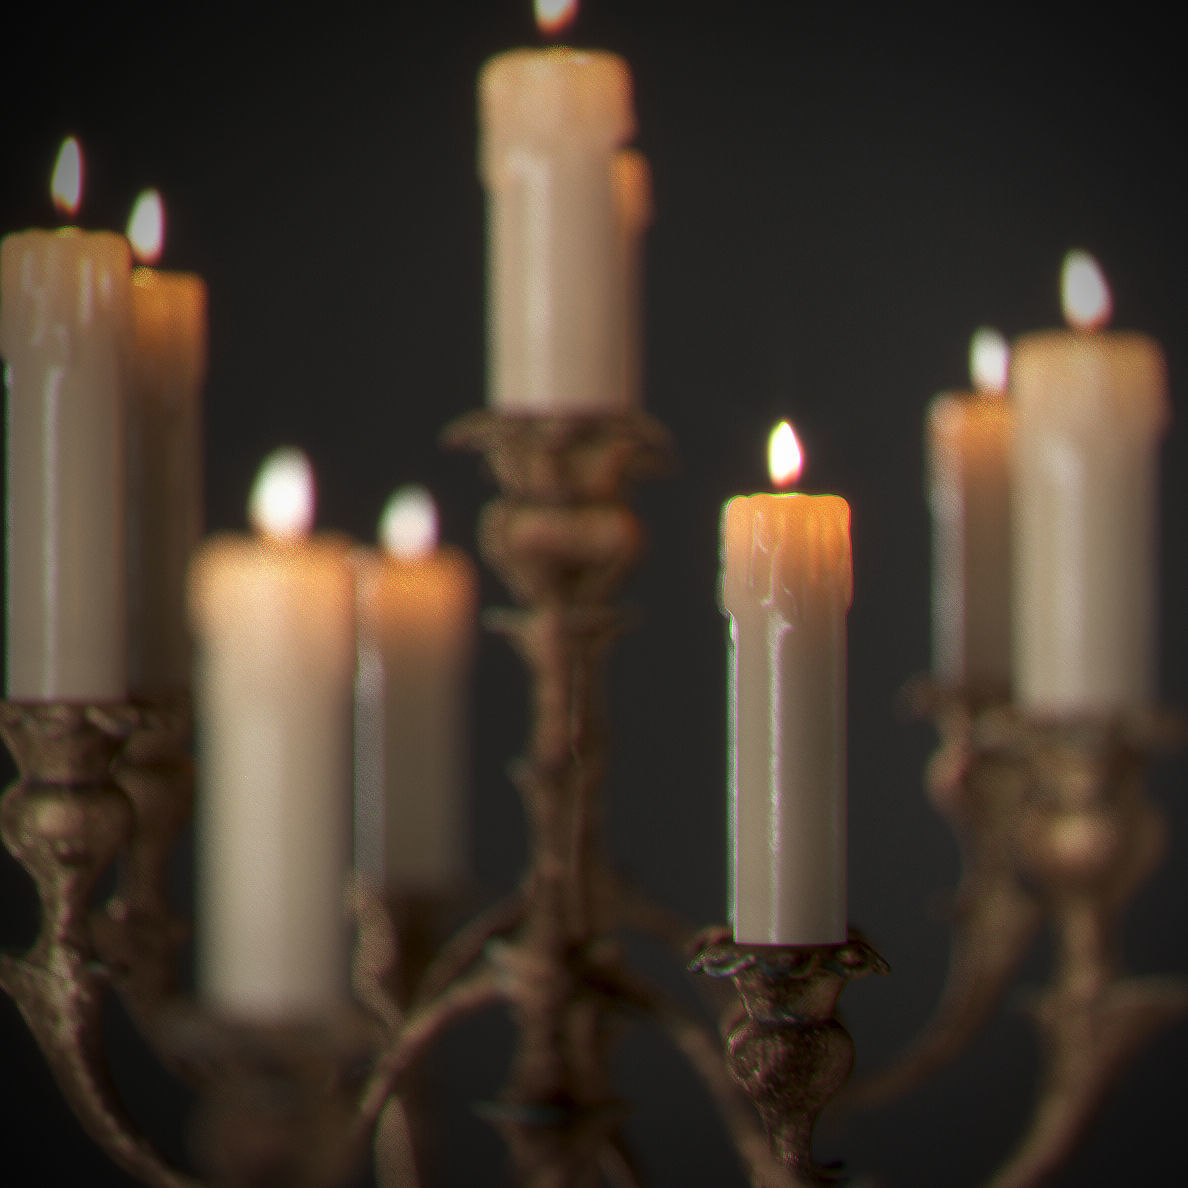 Candles on candlestick